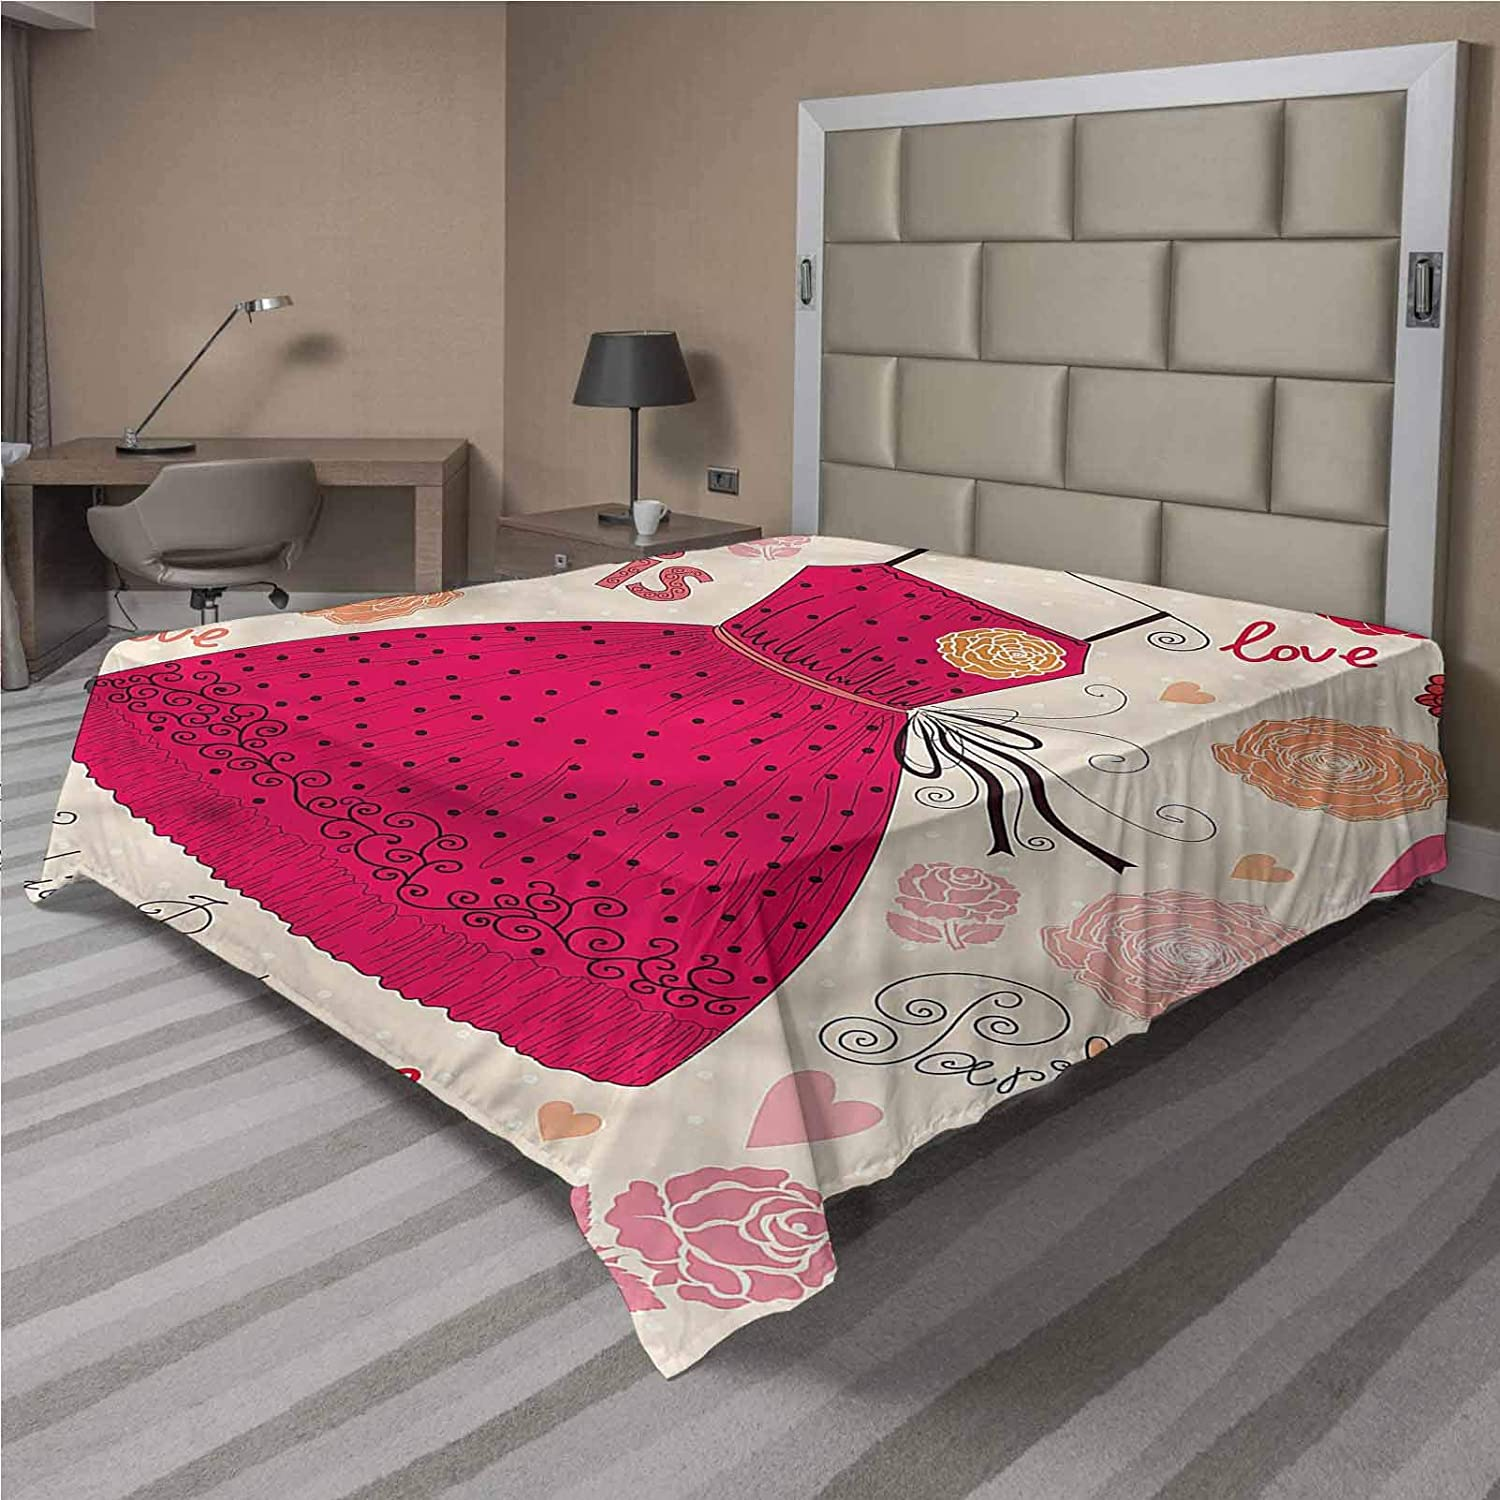 LCGGDB Girls Flat Sheet Only,Retro Fashion Elements Outfit Brushed Microfiber Bedding Top Sheet, Ultra Soft Bed Flat Sheets,1 Piece,Full Size,Fit for Oversize and Extra Height Full Bed